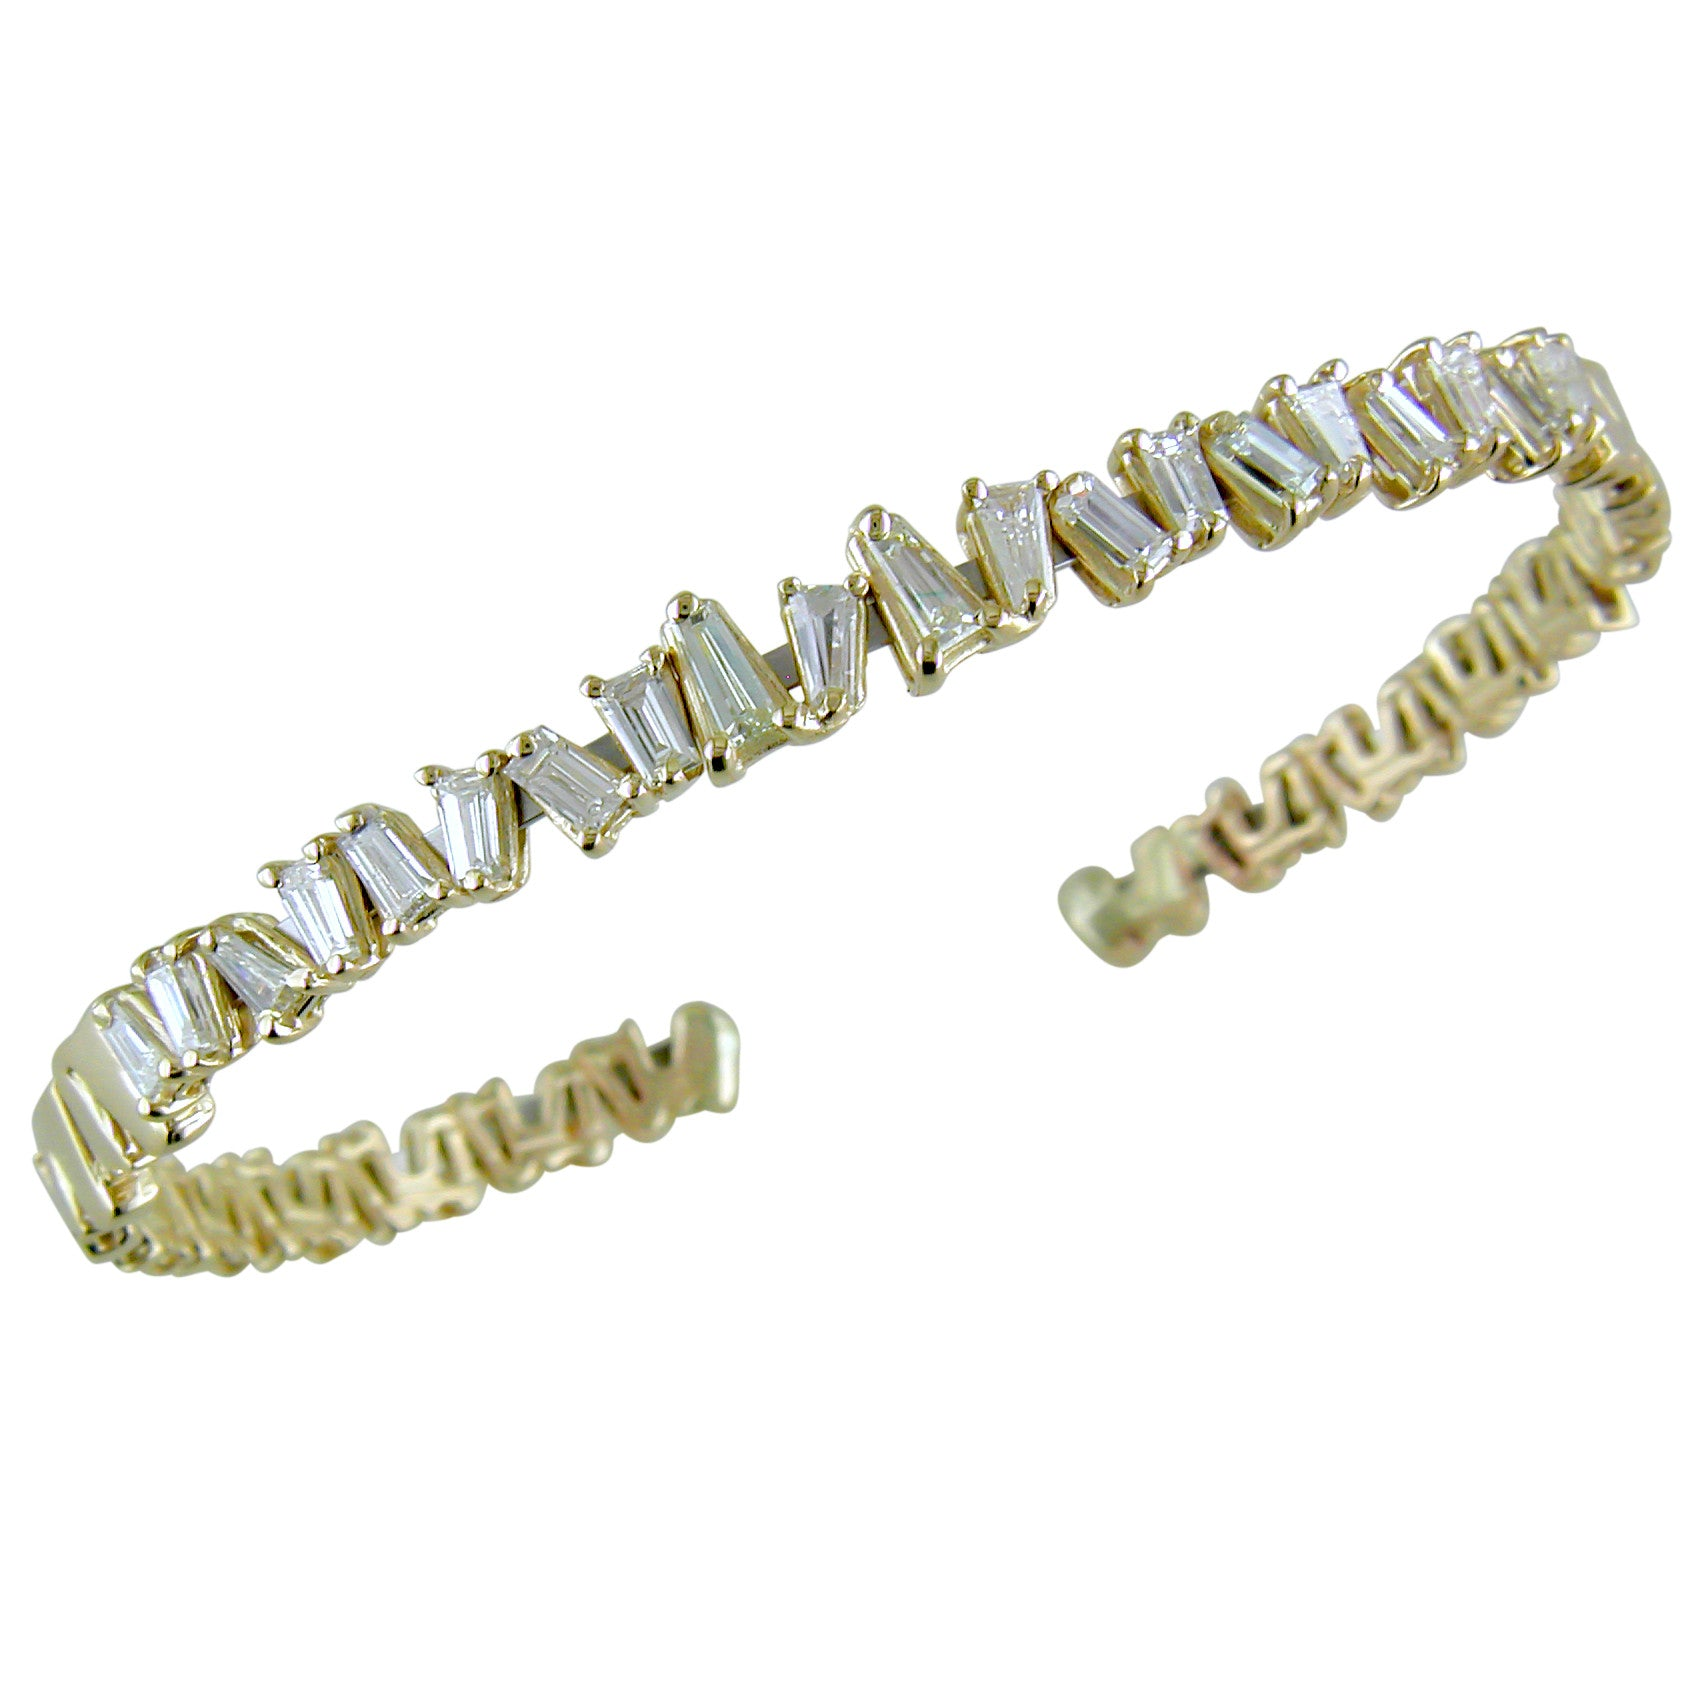 Baguette Diamond 14K Yellow Gold Semi-Stiff Flexible Bracelet